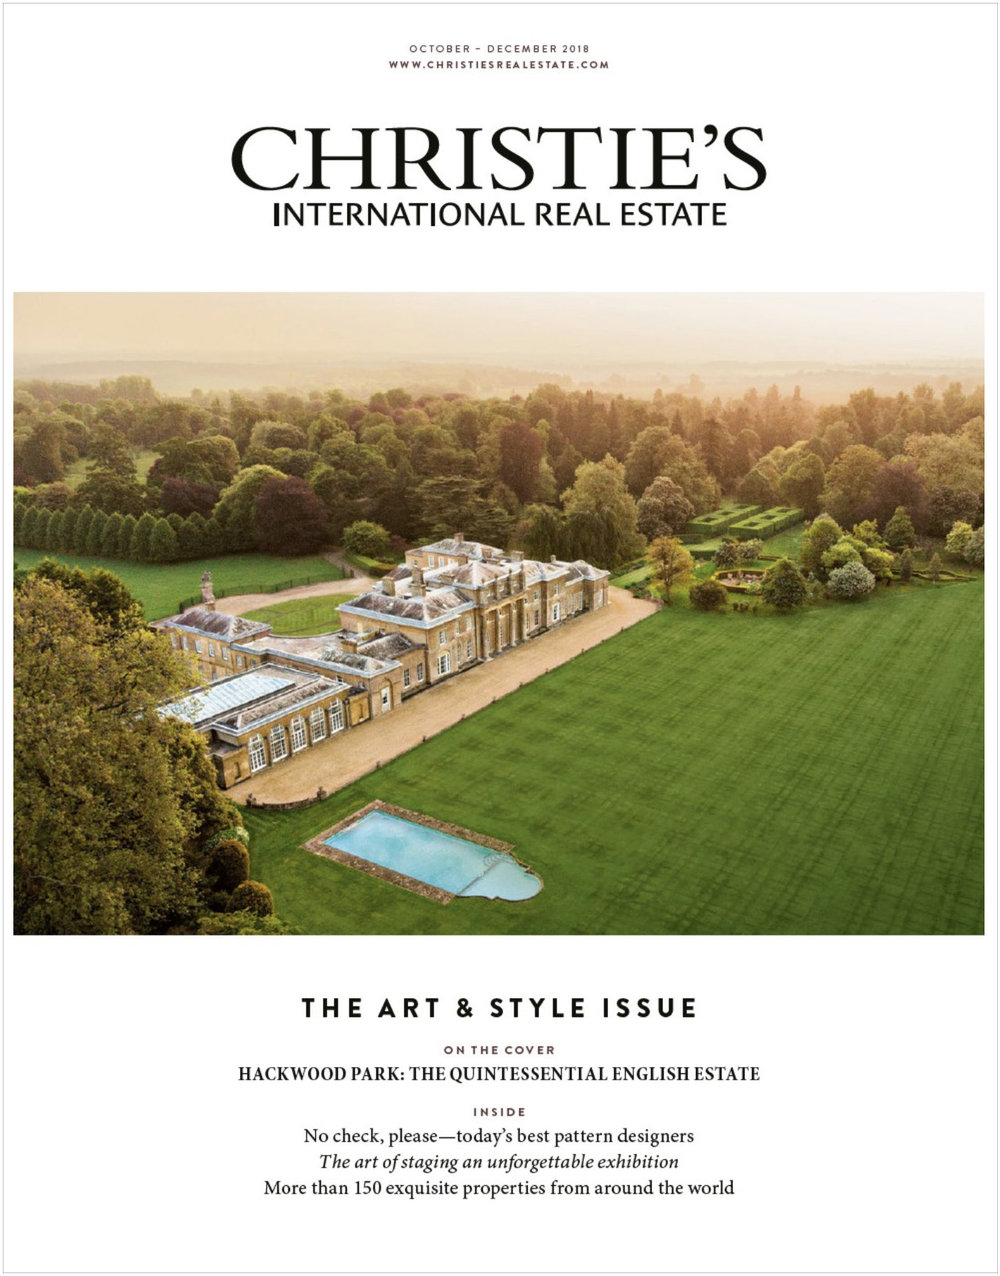 christies cover copy.jpg